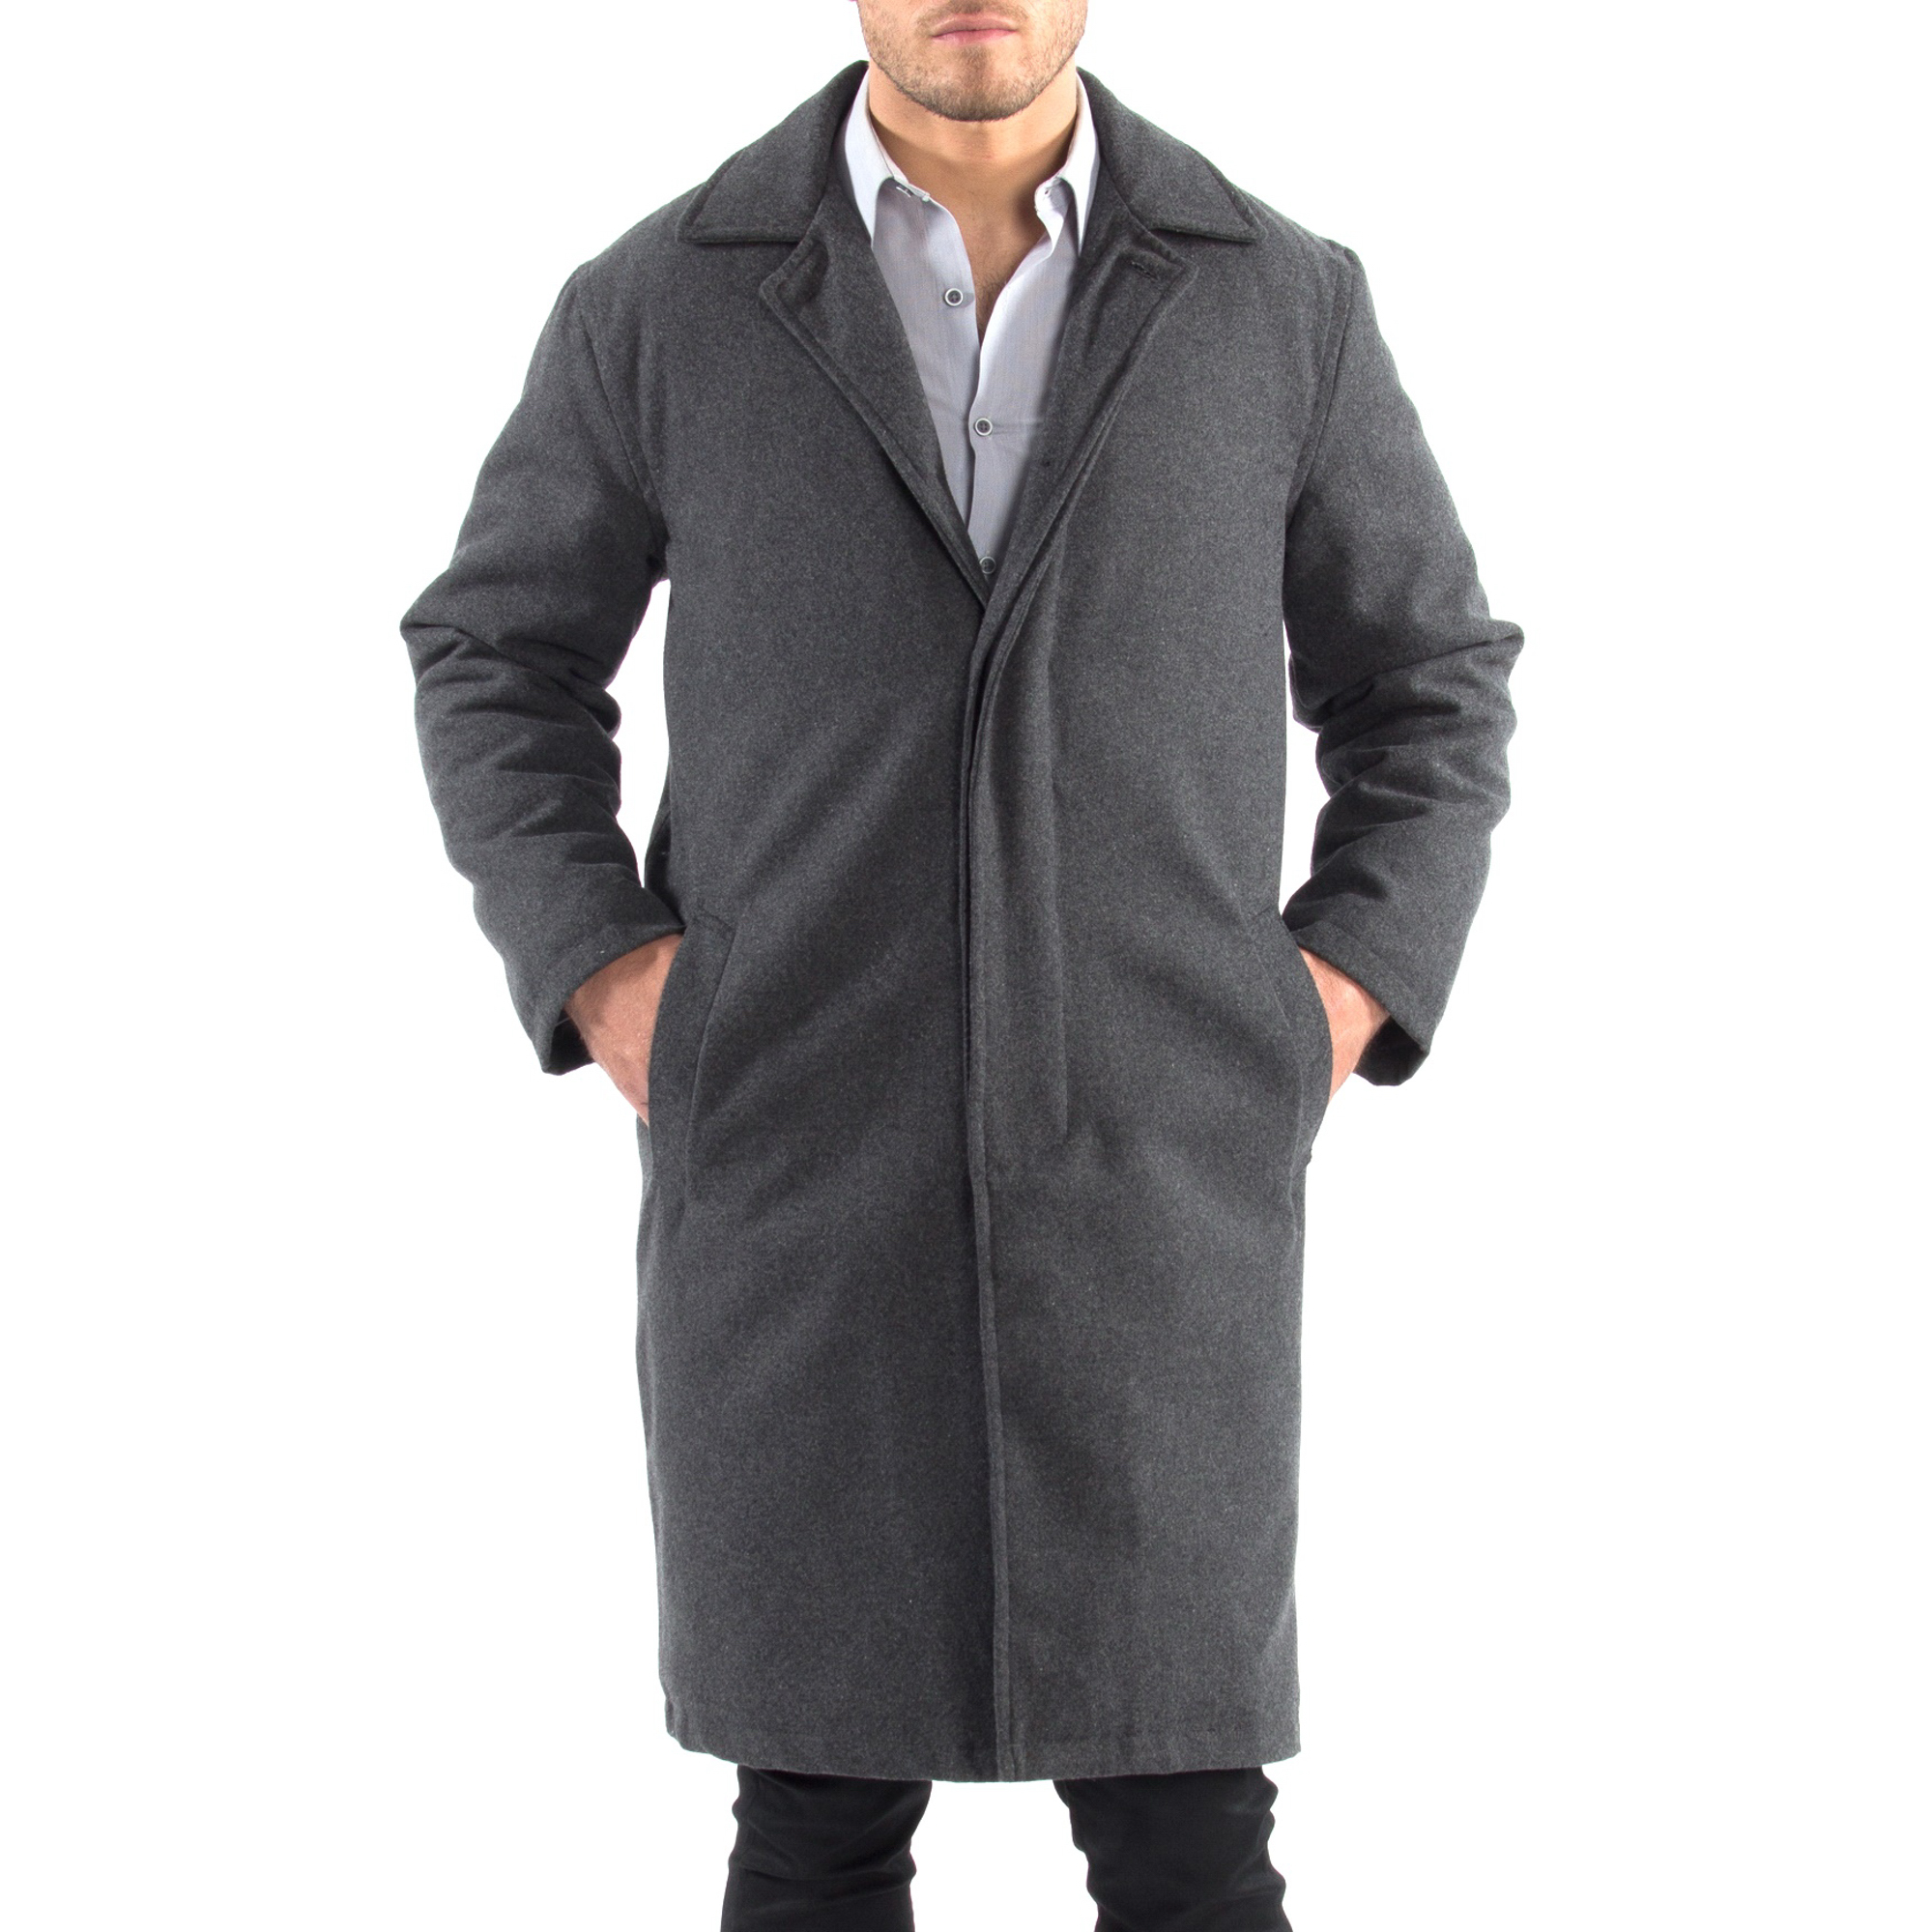 Alpine-Swiss-Mens-Zach-Knee-Length-Jacket-Top-Coat-Trench-Wool-Blend-Overcoat thumbnail 40